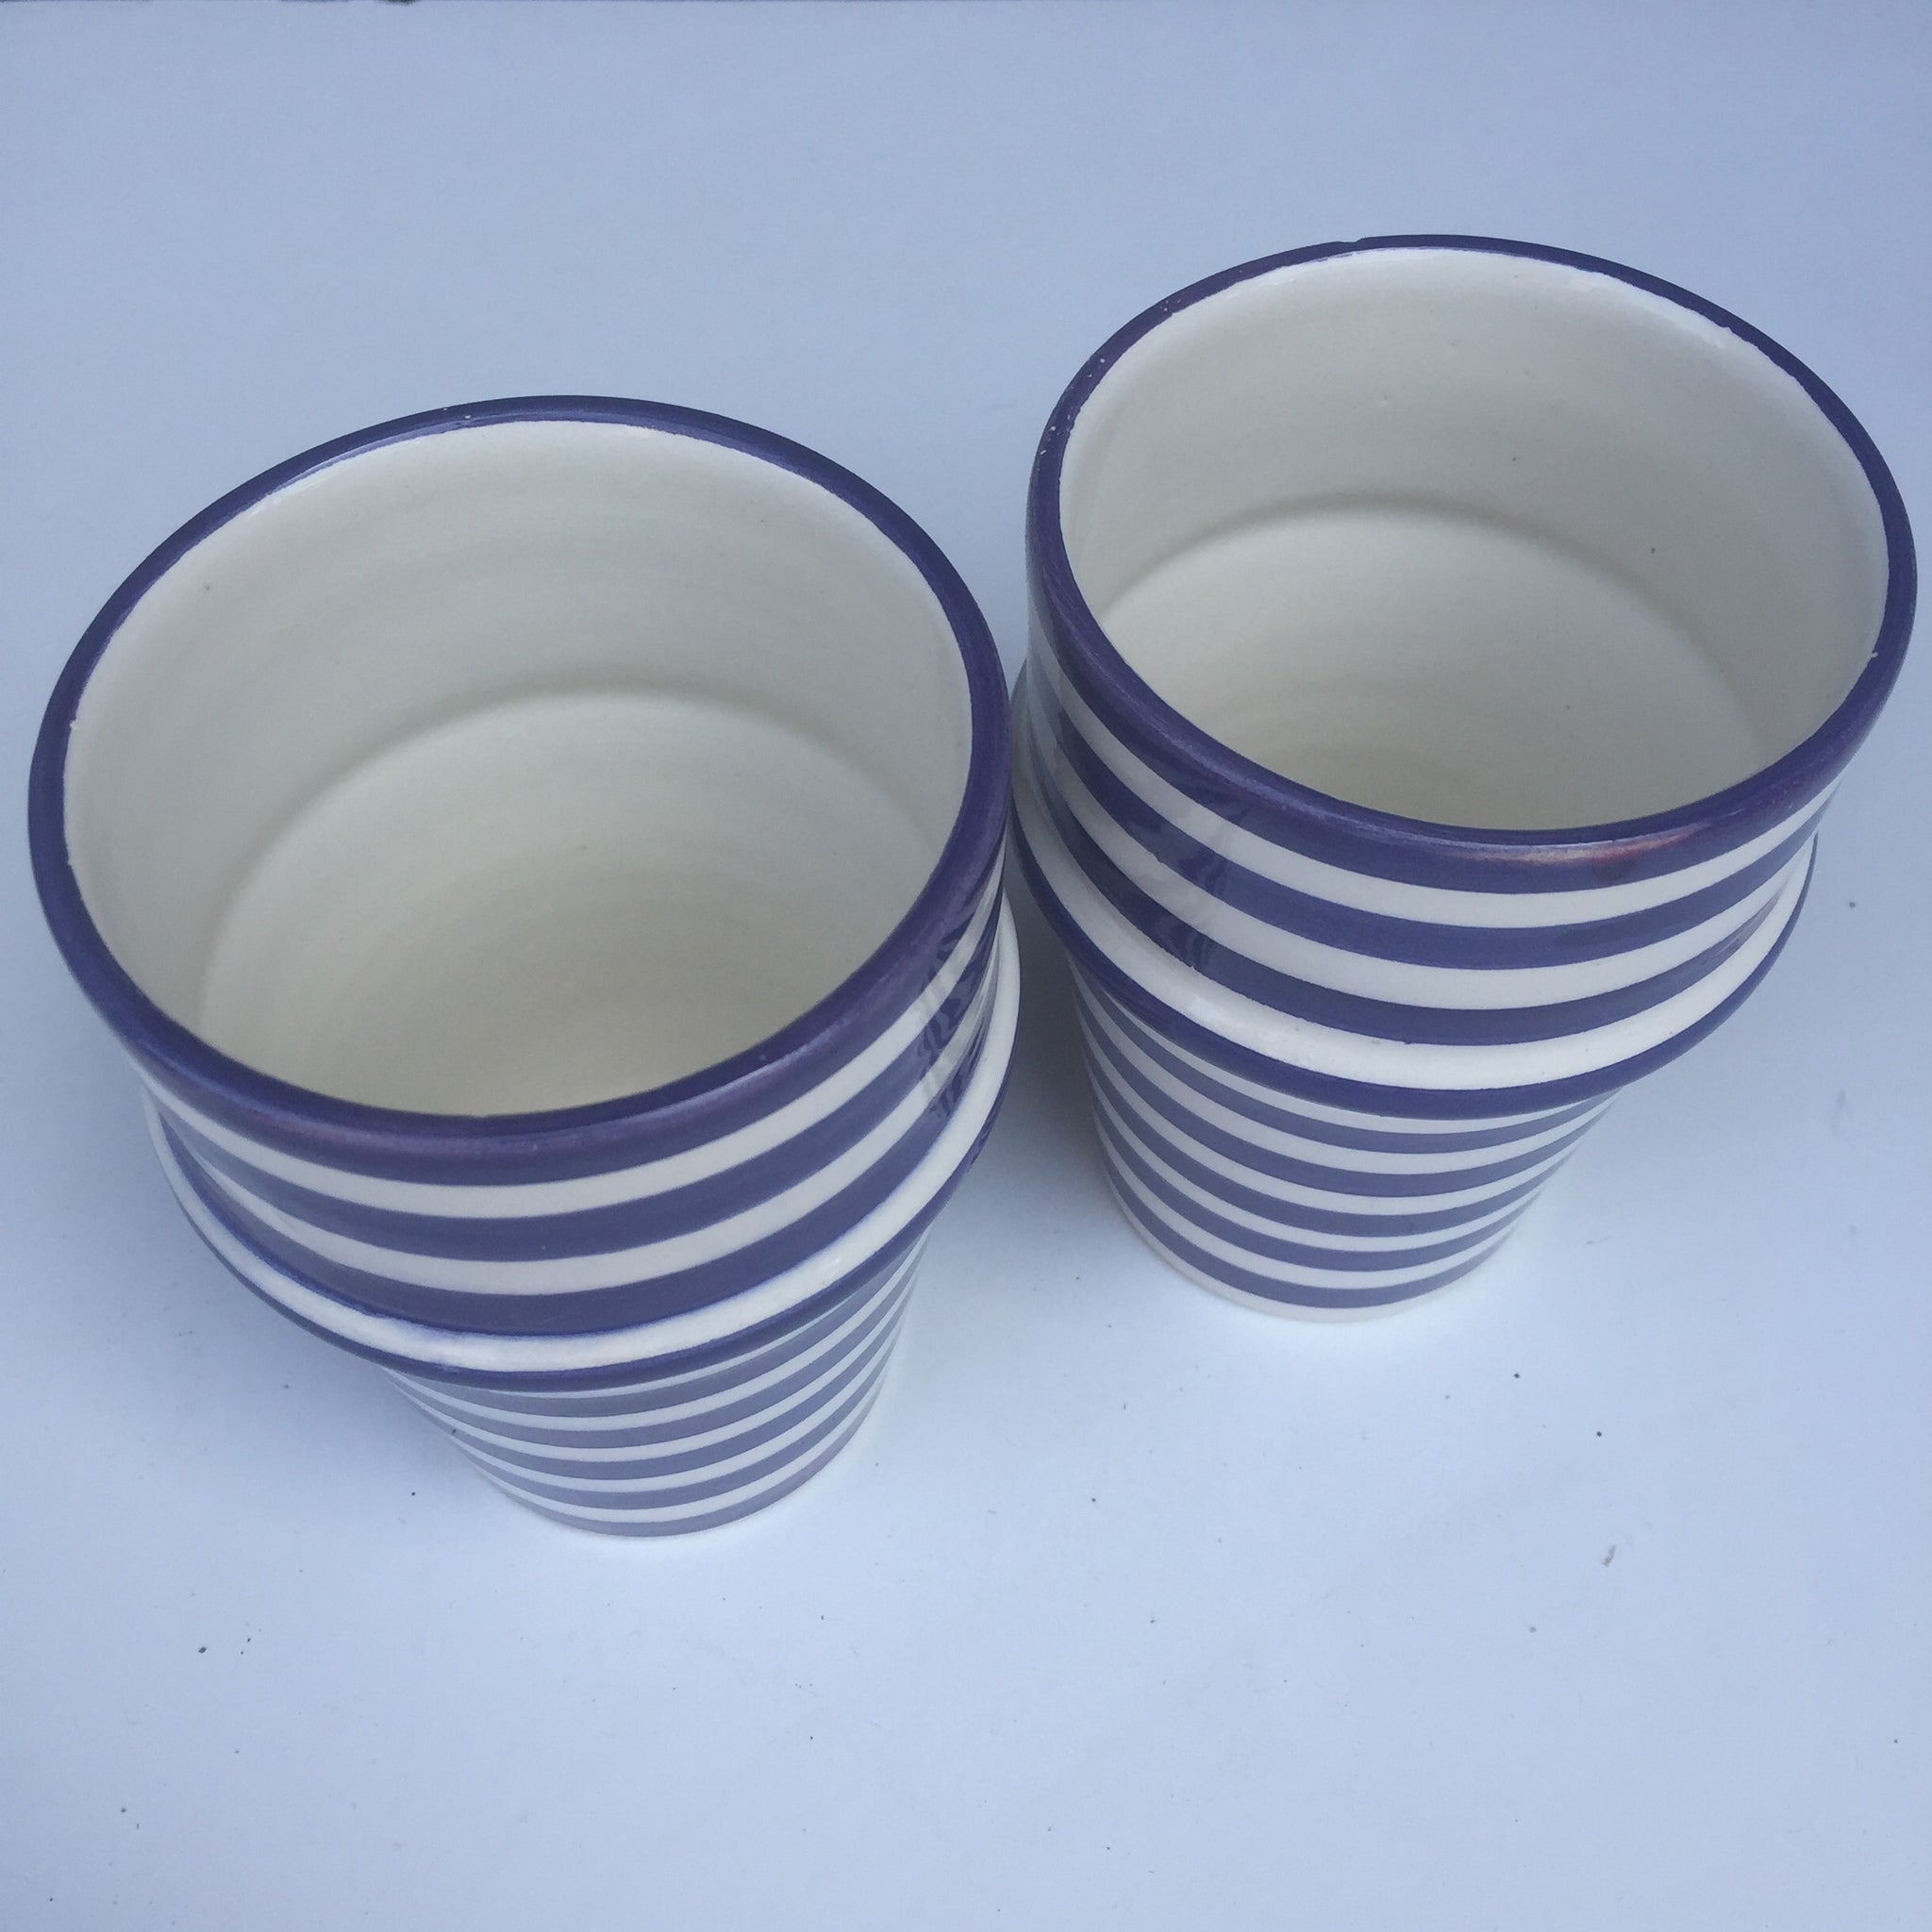 BULLSEYE BELL & DEE cups set of 2 NAVY